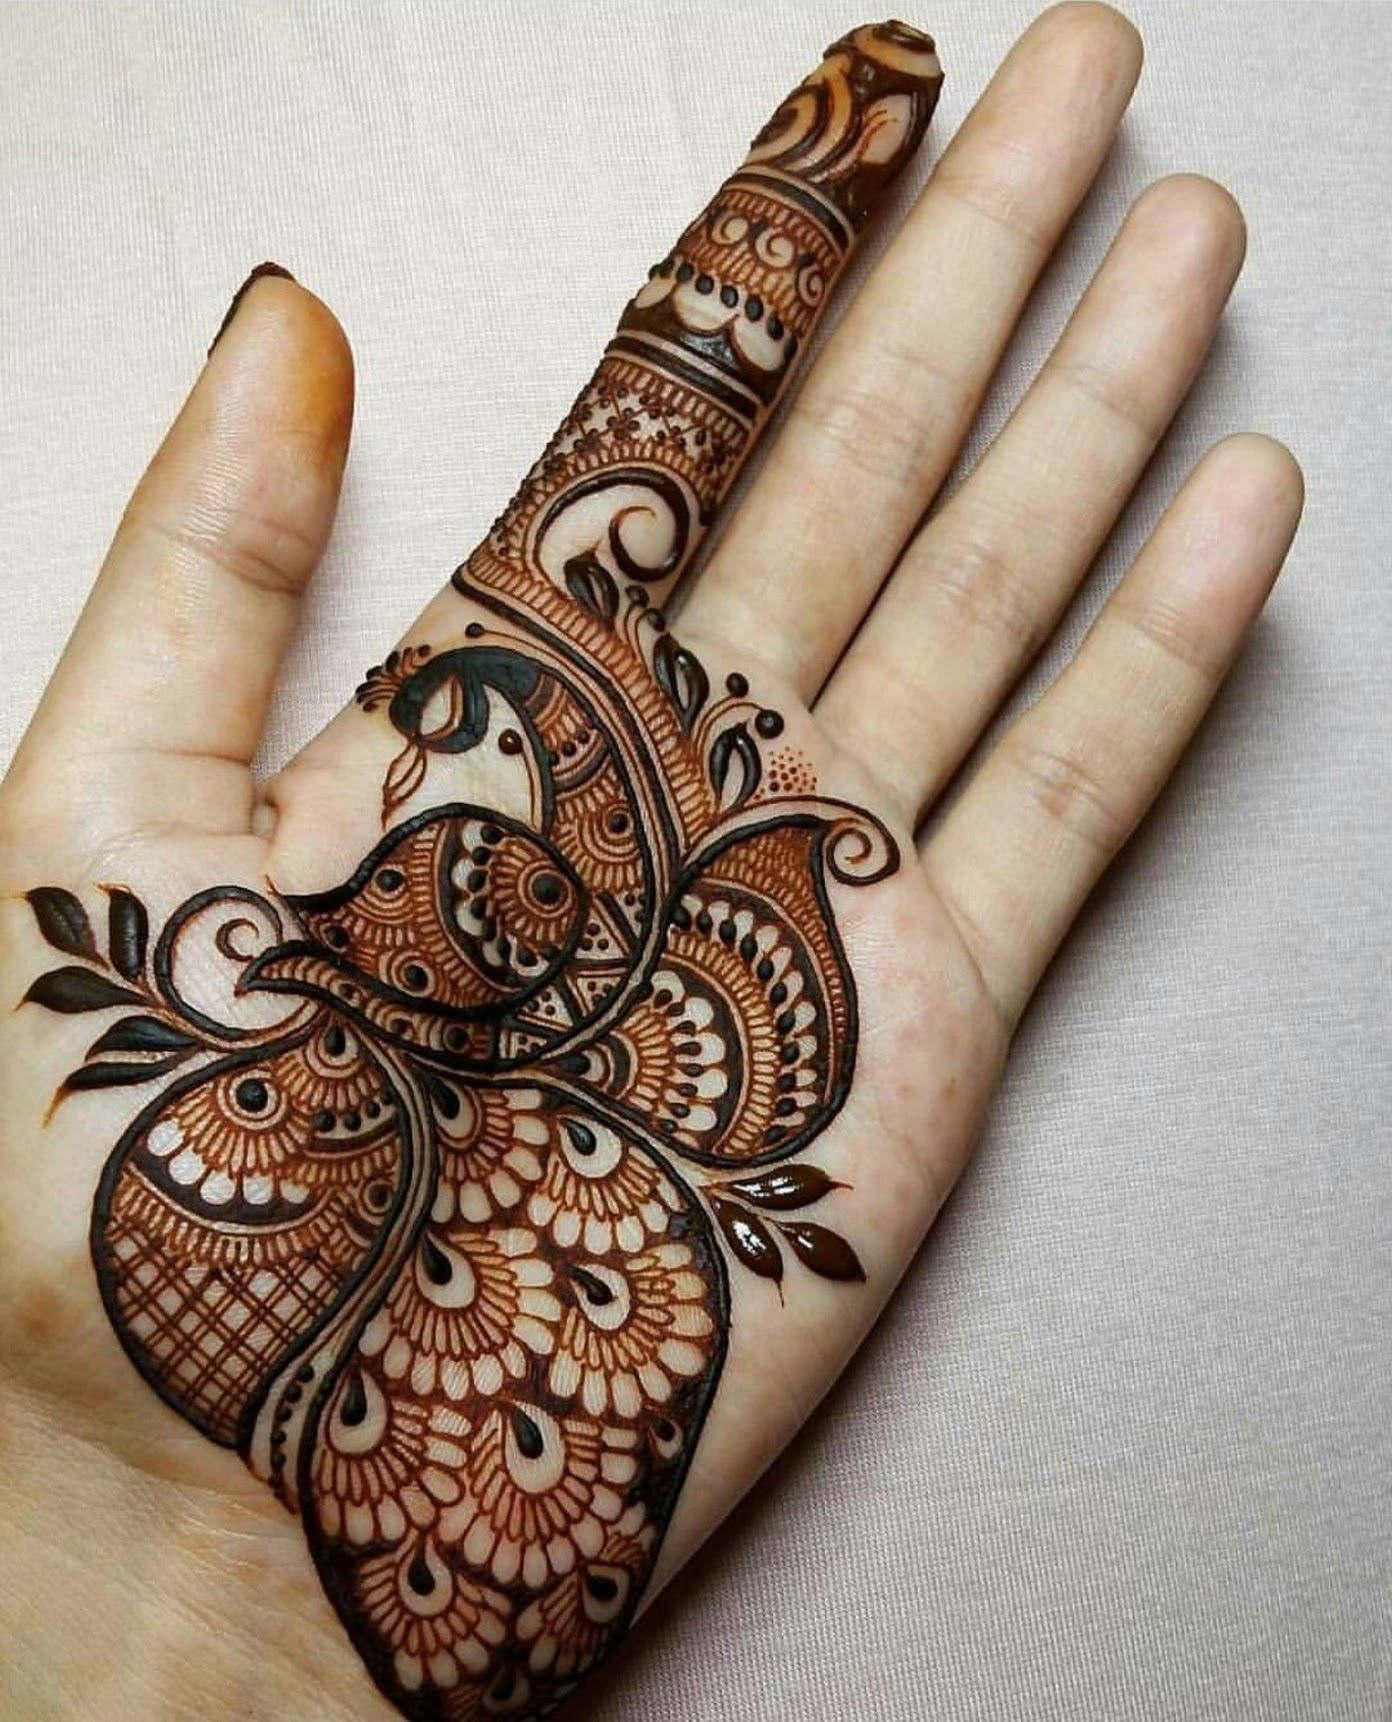 Pin By Yuni Dmokiss On Henna Pengantin Mehndi Mehndi Designs Henna